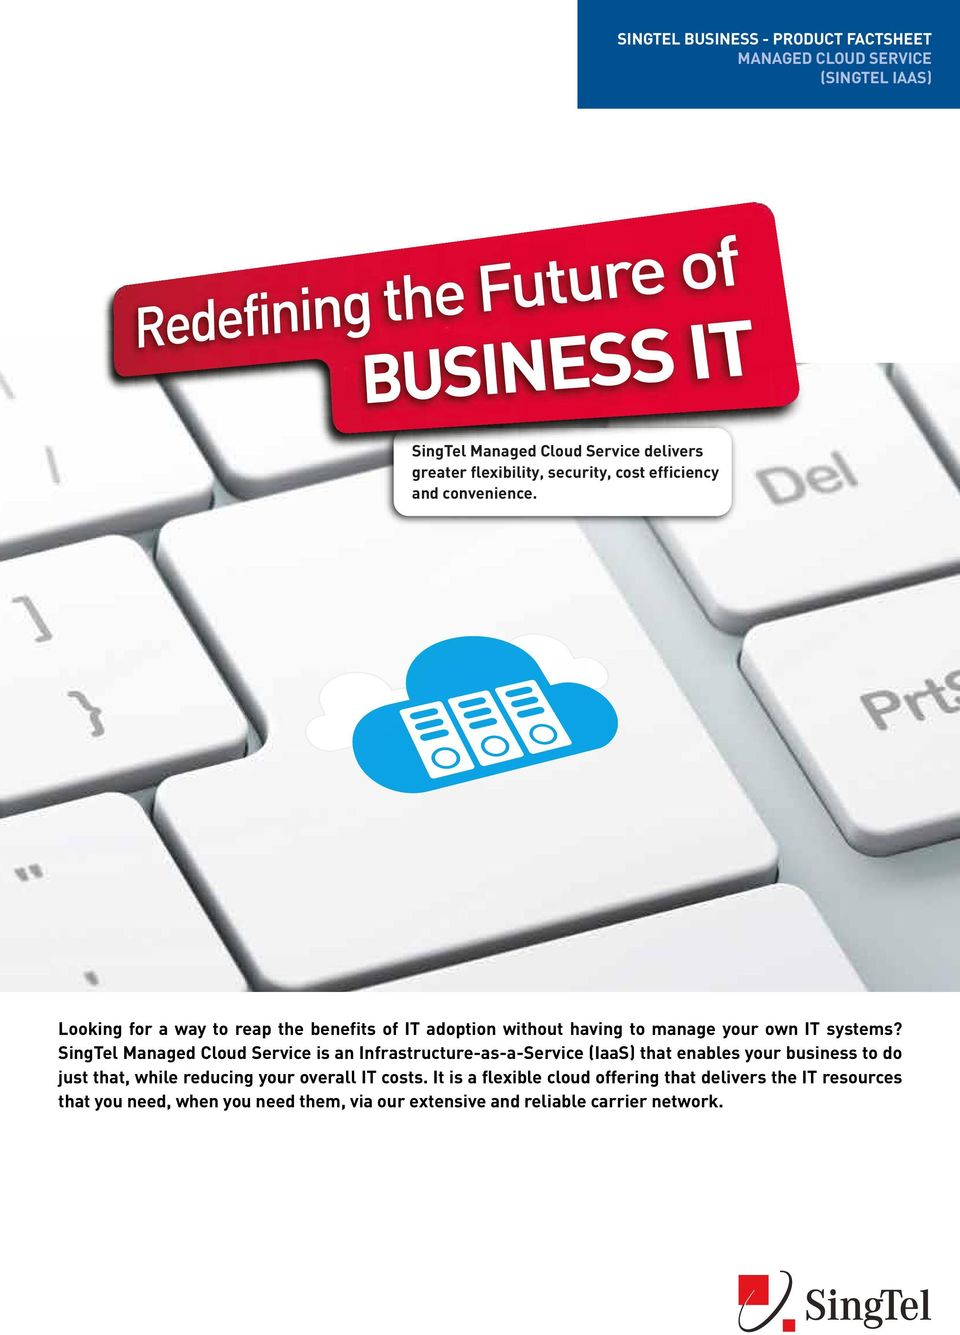 SingTel Managed Cloud Service is an Infrastructure-as-a-Service (IaaS) that enables your business to do just that, while reducing your overall